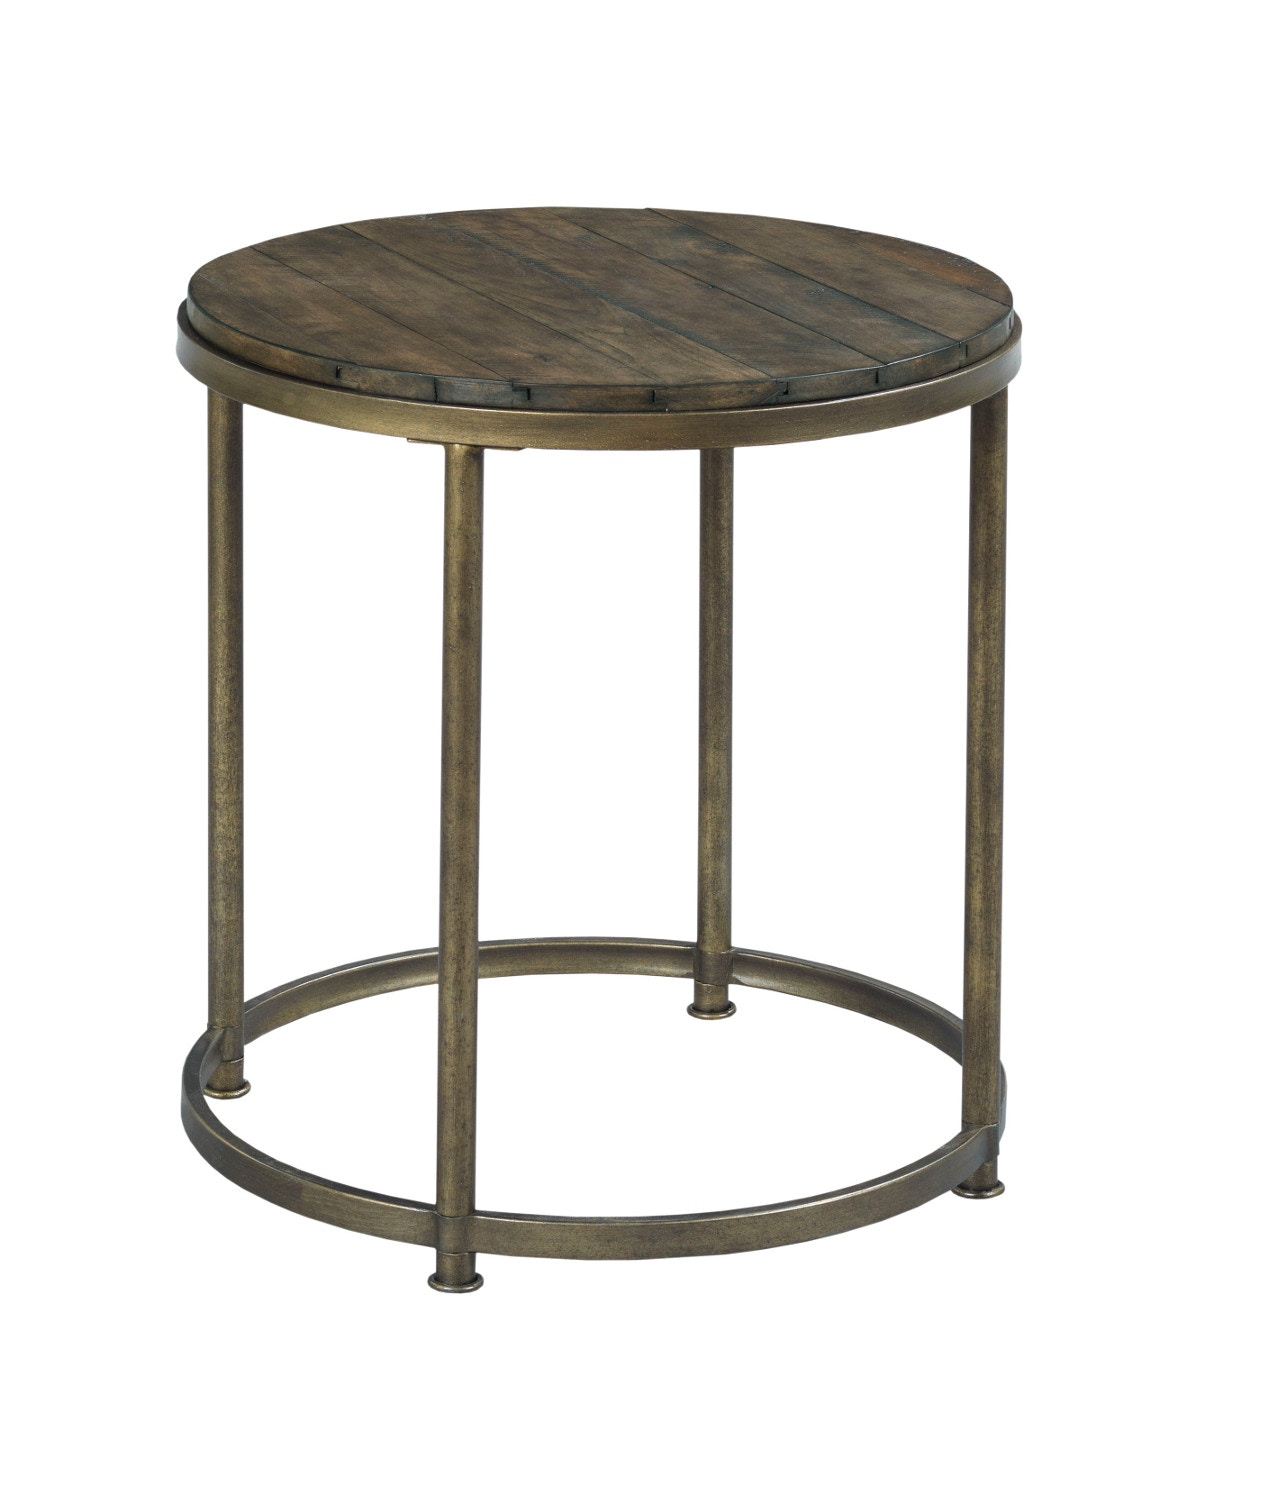 Leone Round End Table In Weathered Barn And Antique Brass